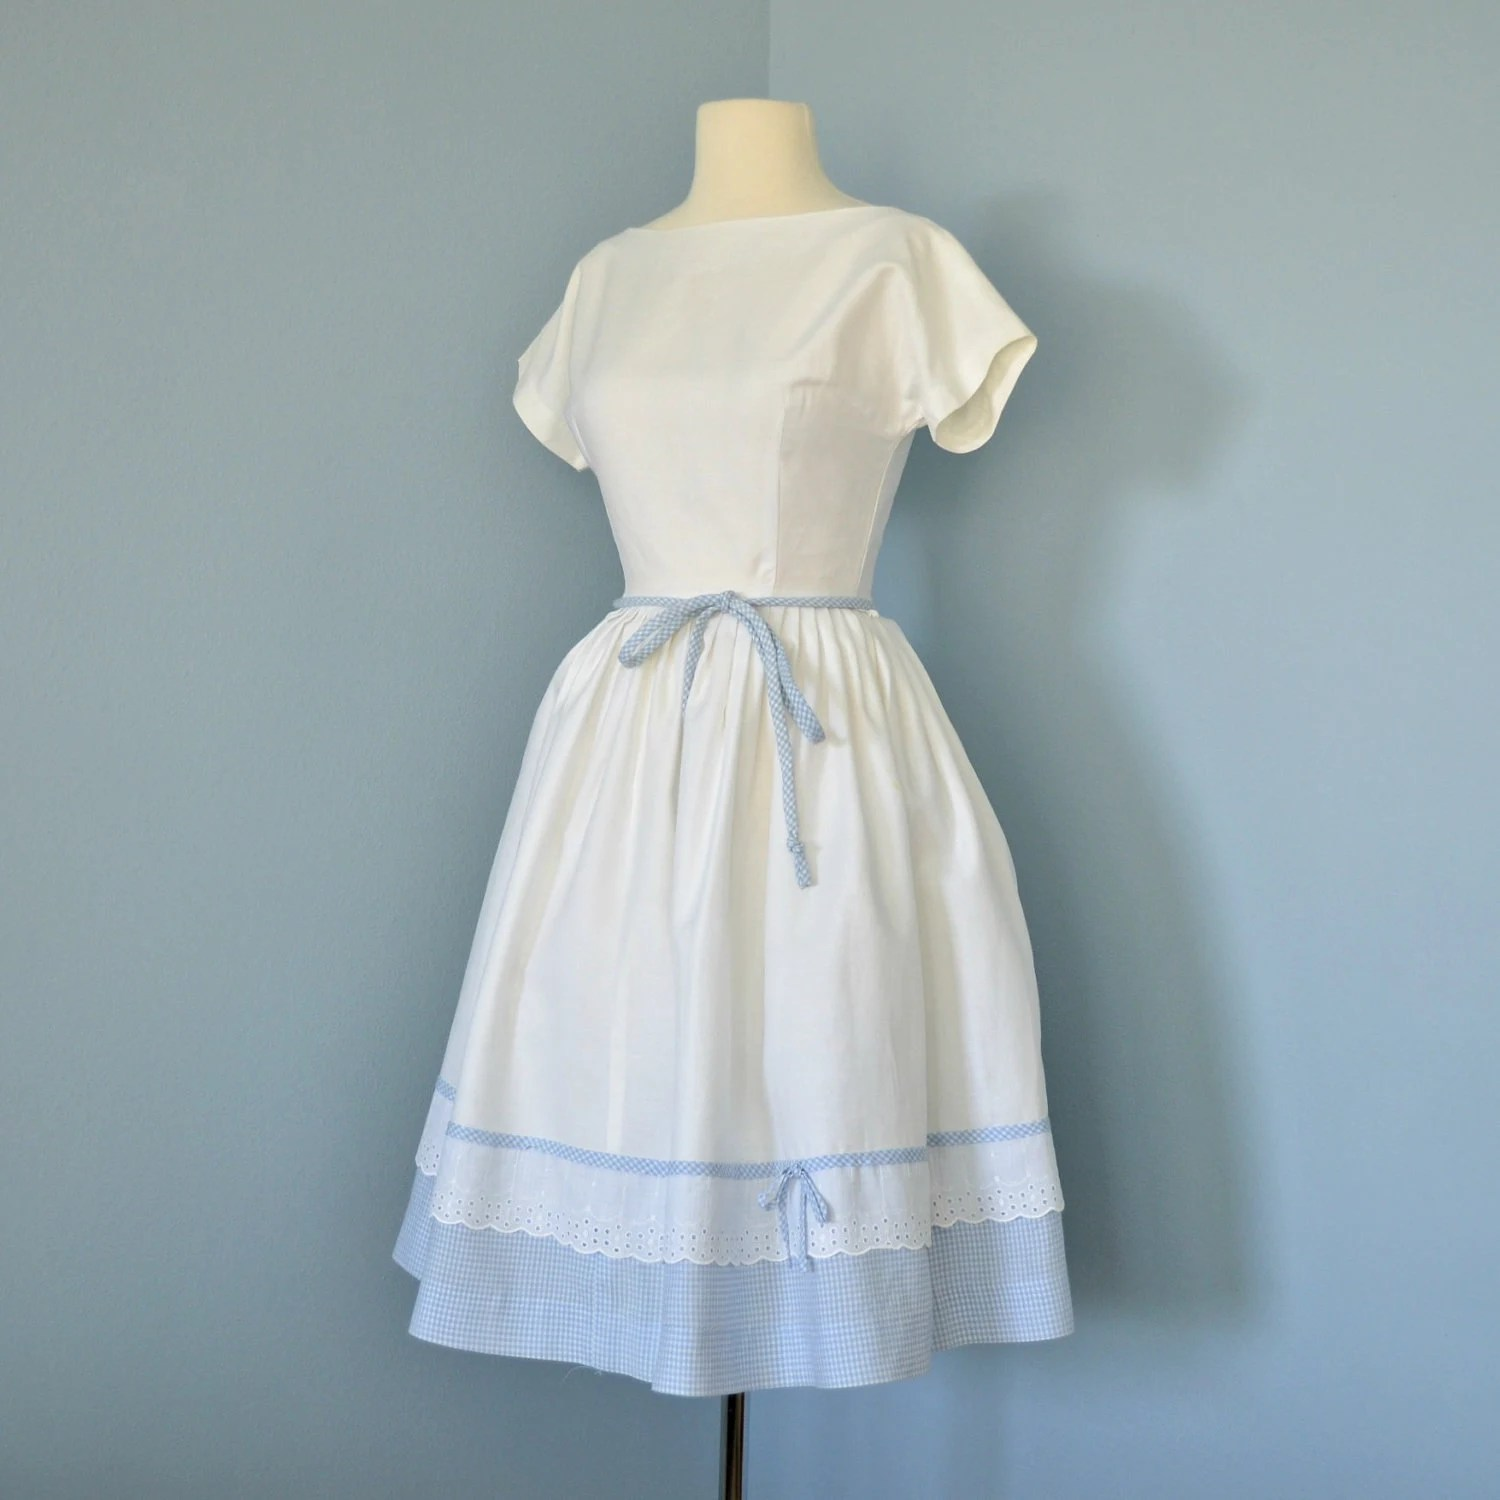 RESERVED FOR MICHELLE Vintage Cotton Dress...1960's Short White Embossed Cotton Lois Ann Jrs. Dress  Blue Gingham and Eyelet Lace